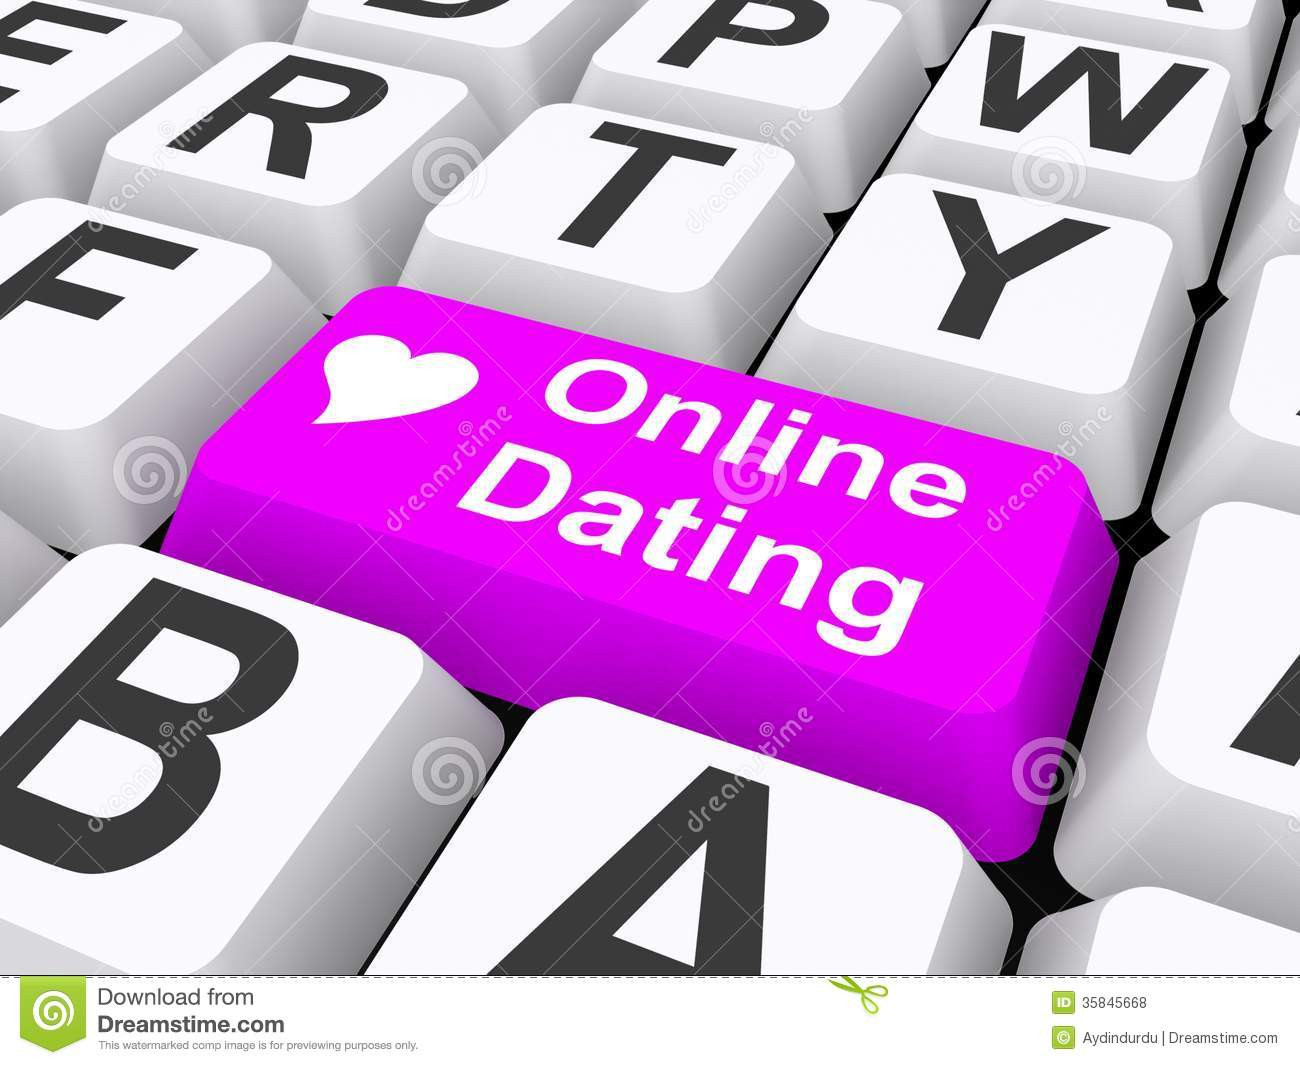 Sa online dating free